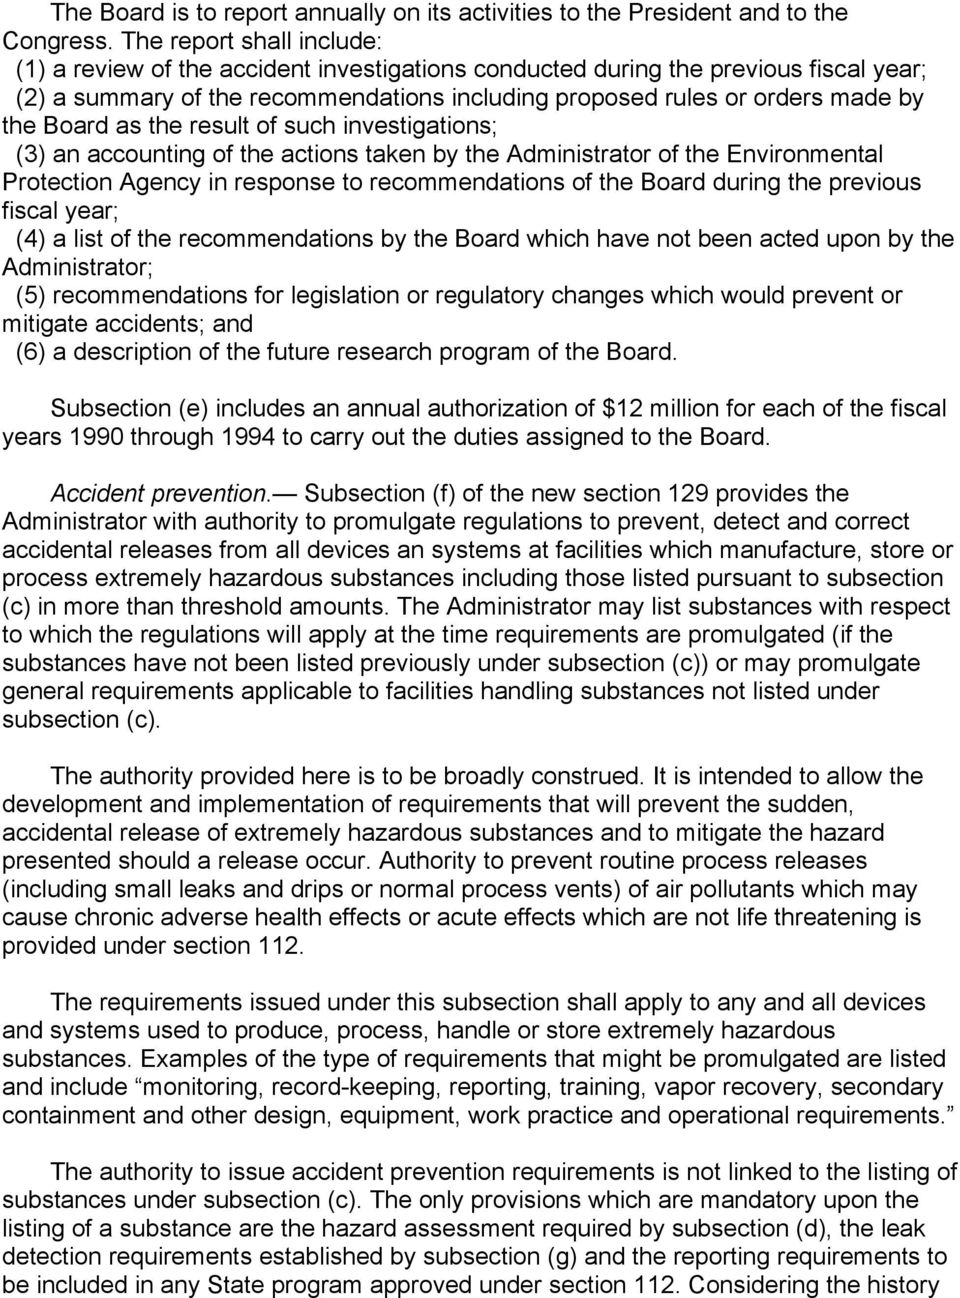 Board as the result of such investigations; (3) an accounting of the actions taken by the Administrator of the Environmental Protection Agency in response to recommendations of the Board during the